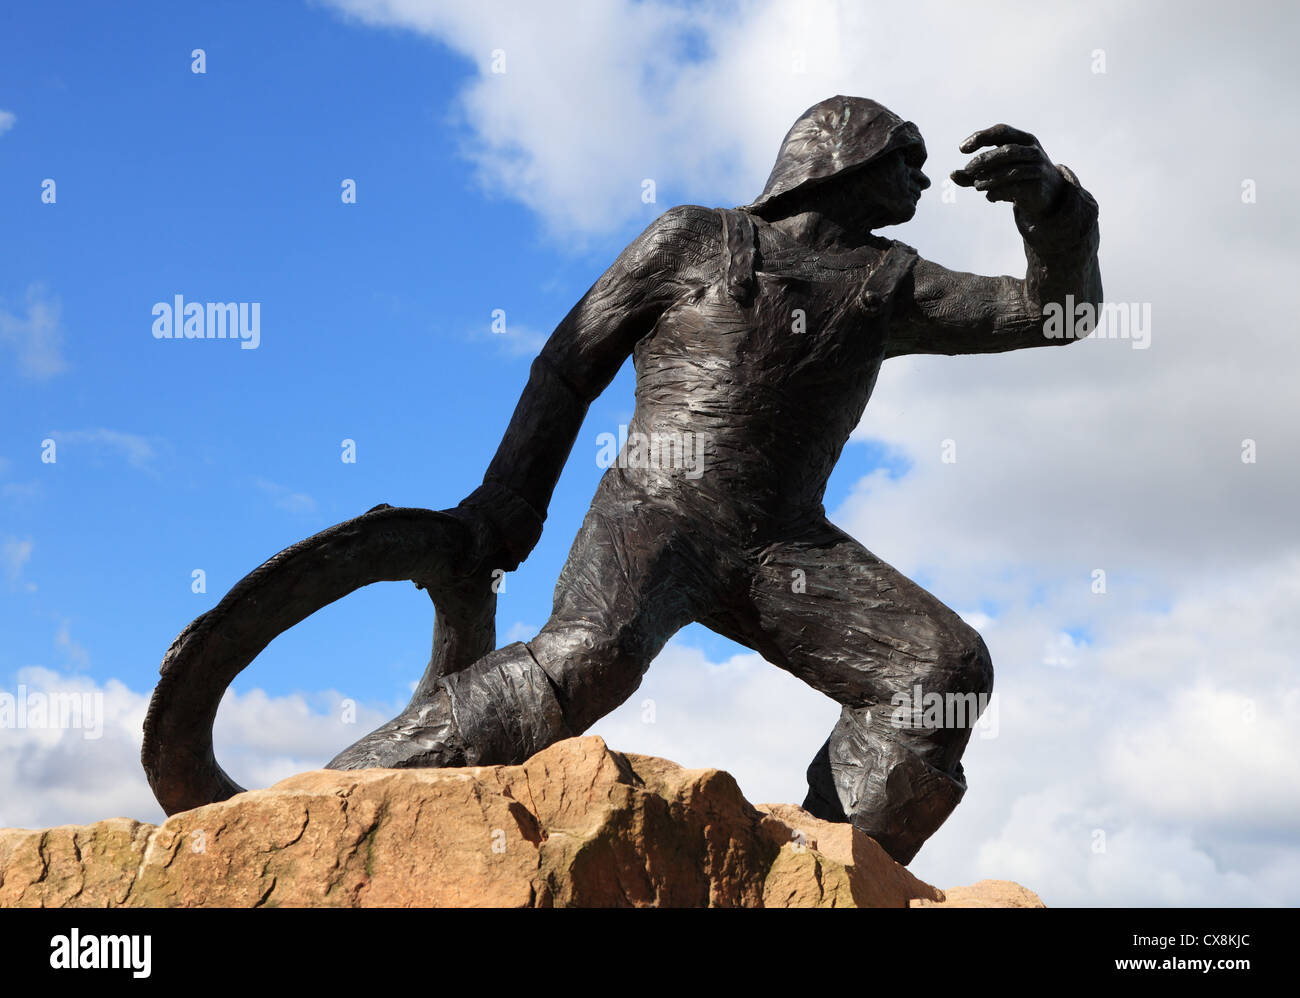 Bronze statue 'The Rescue' showing man with lifebelt at Seahouses, north east England UK - Stock Image